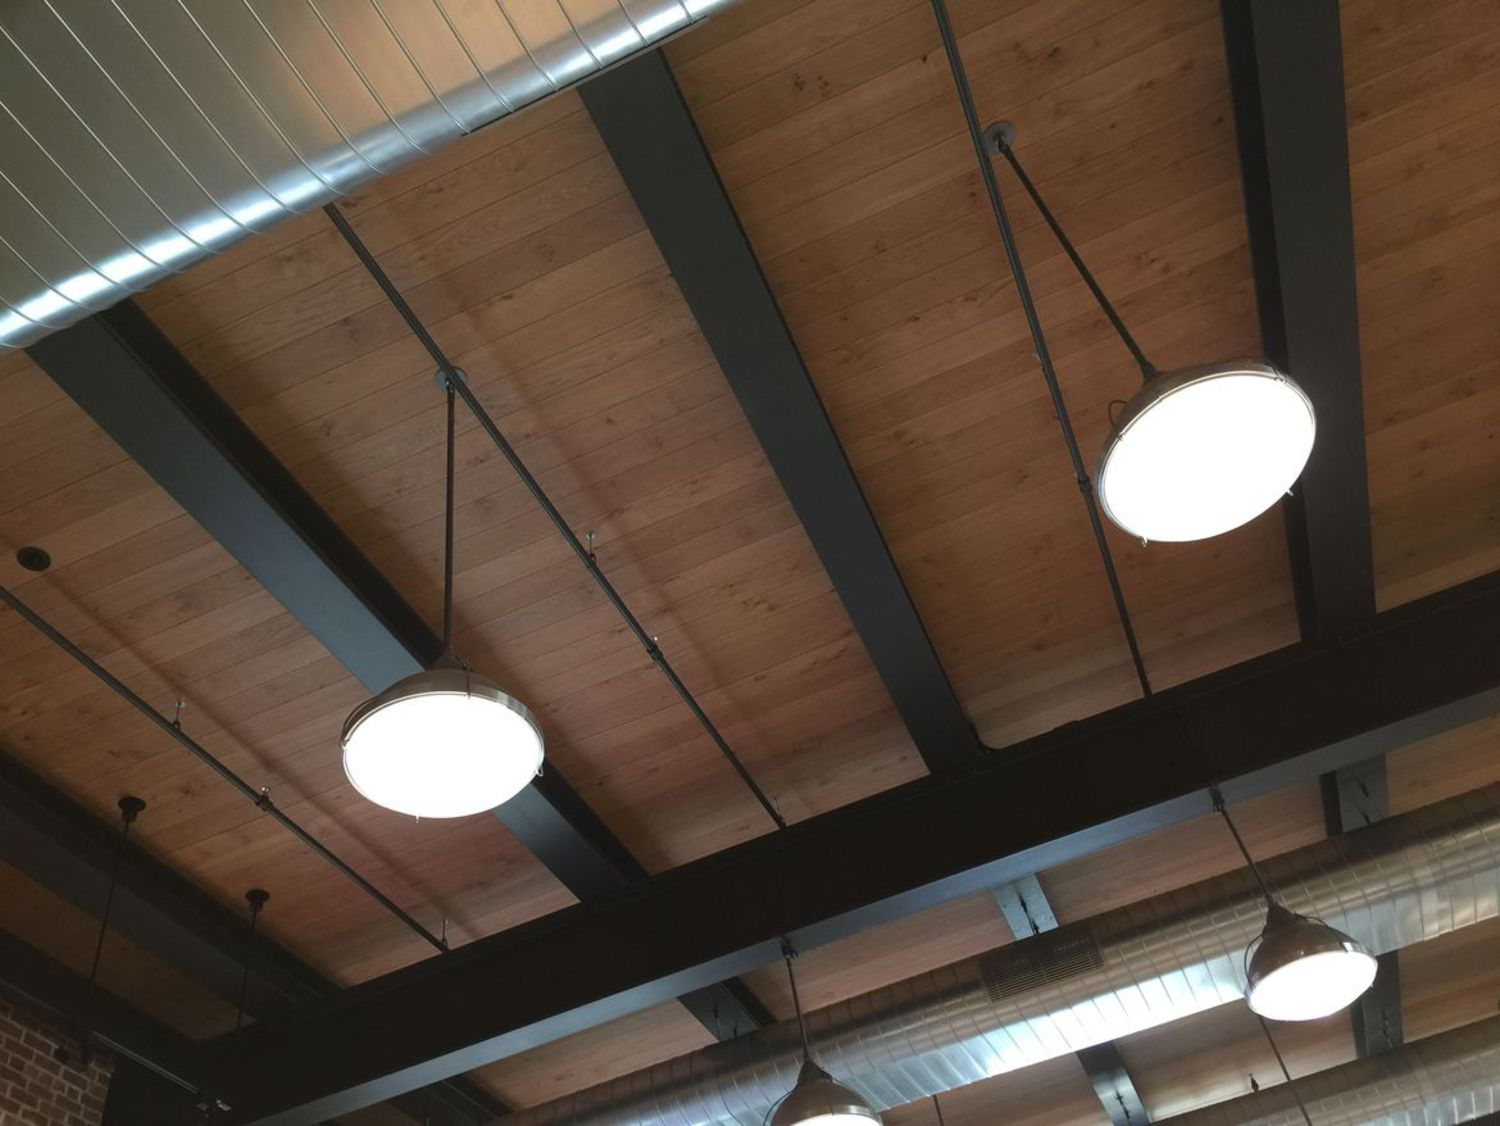 Industrial lights and wooden ceilings keep the vintage warehouse look and feel.